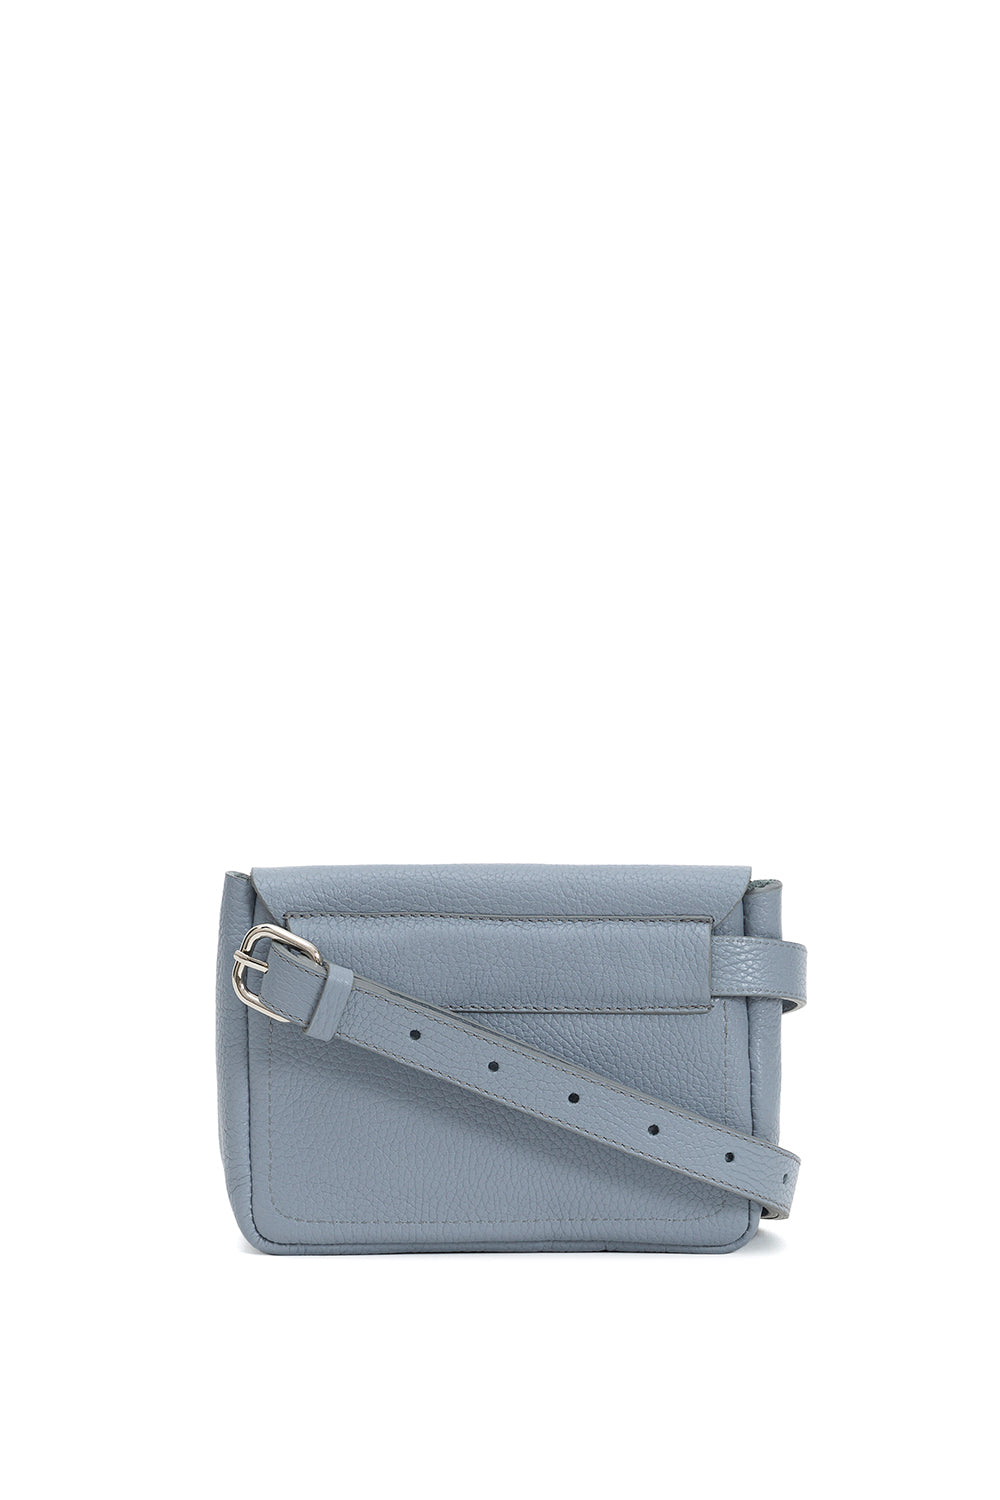 Lavender Blue Belt Bag